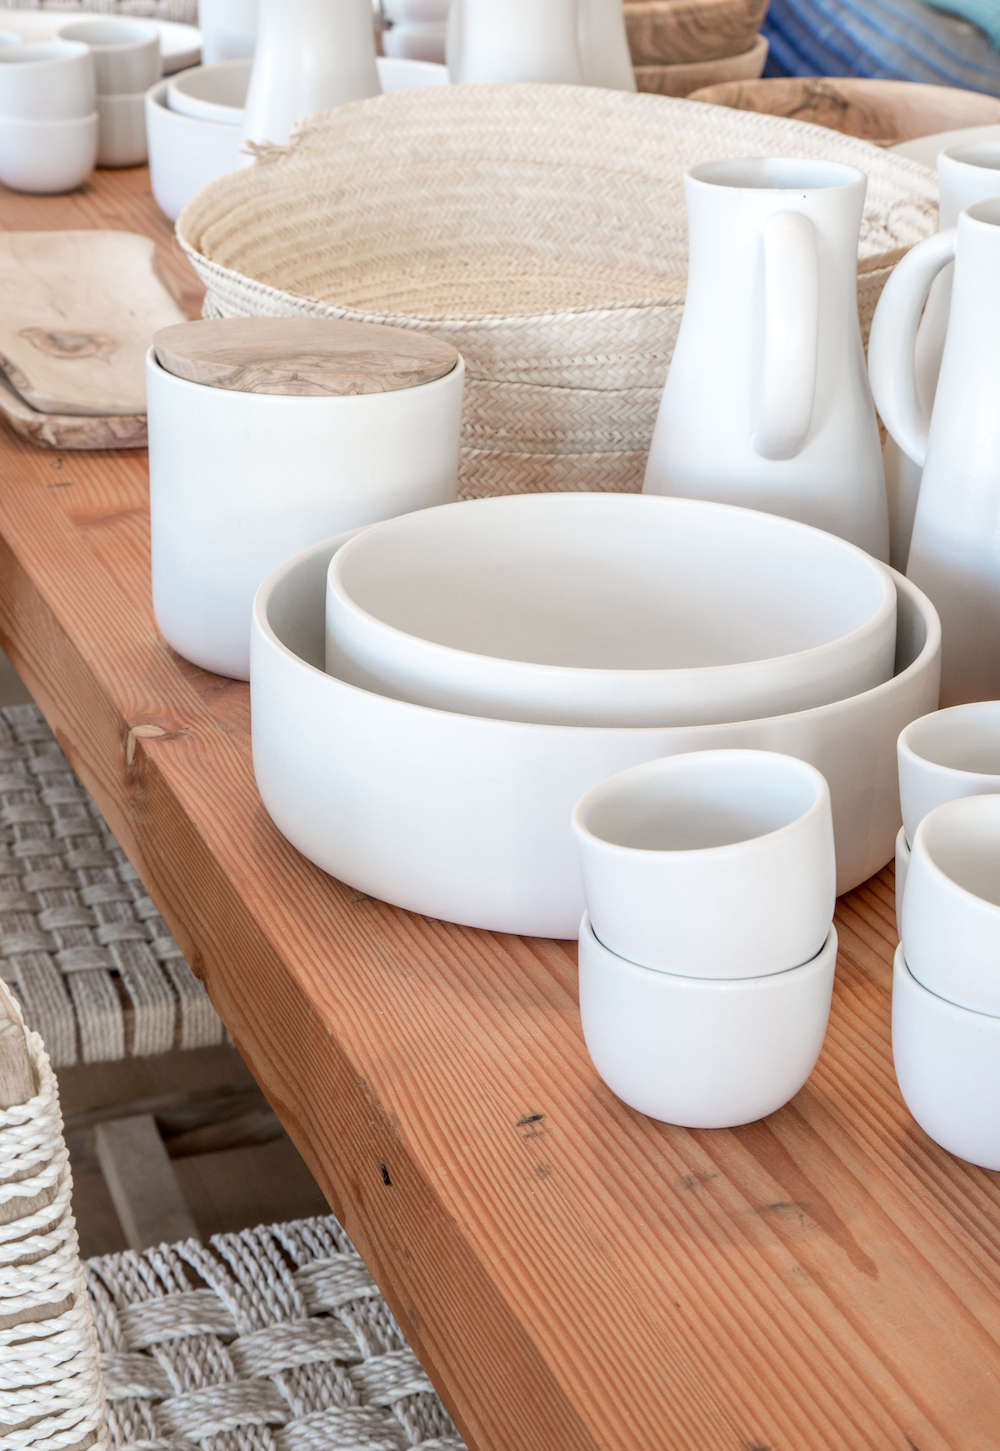 Handmade Tunisian white stoneware pottery in Lost & Found modern home store in Santa Monica, Los Angeles